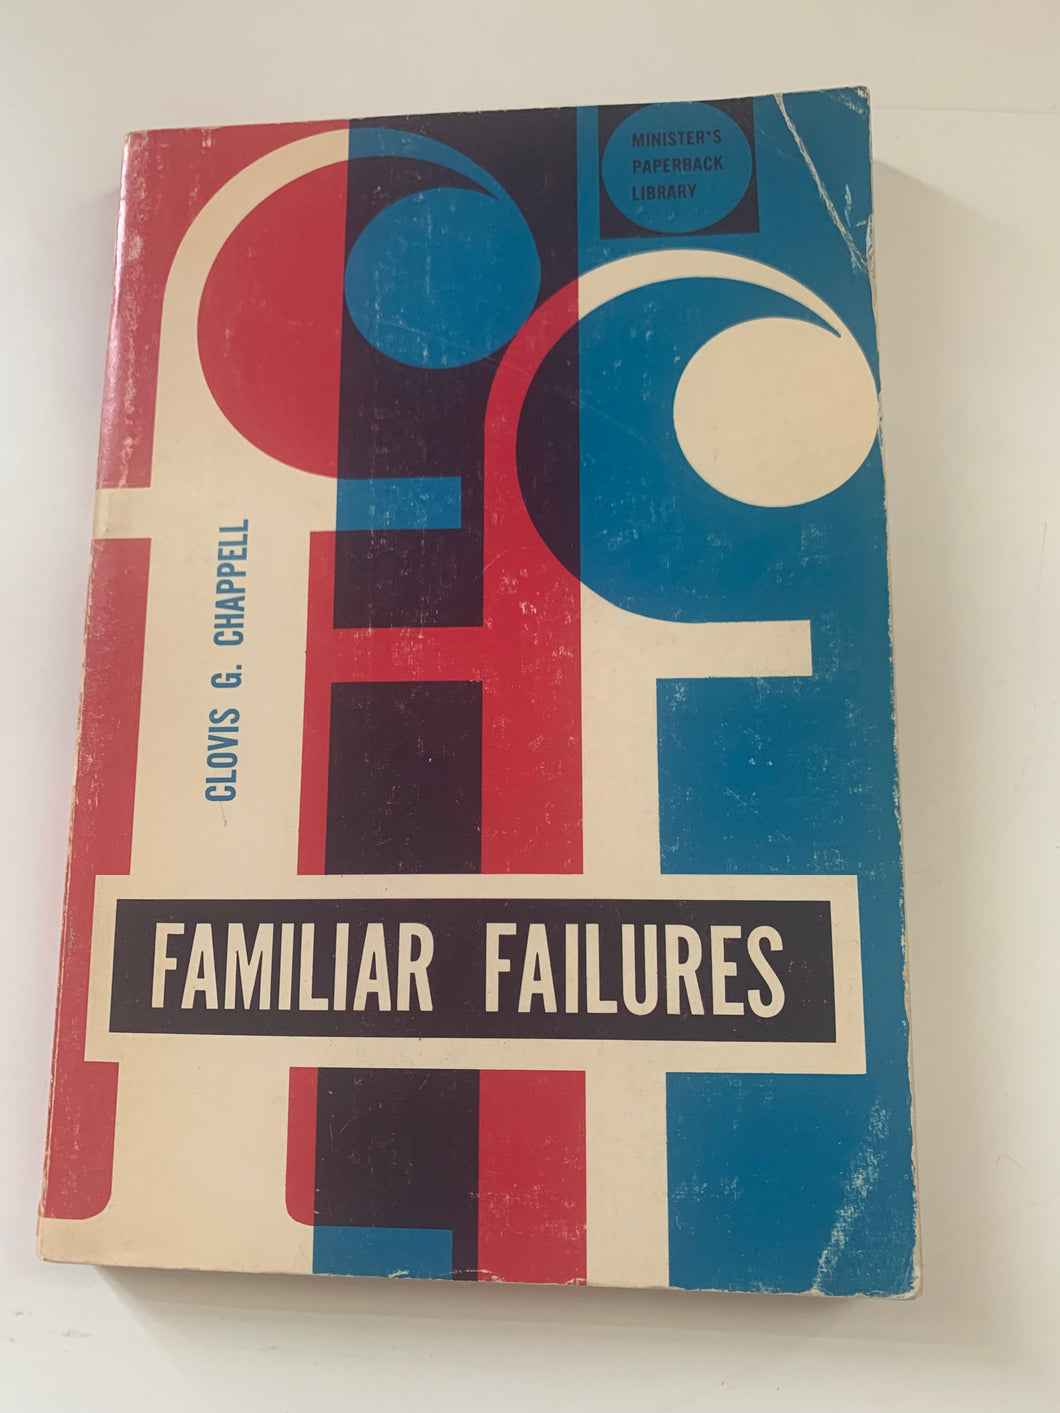 Familiar Failures by Clovis G. Chappell